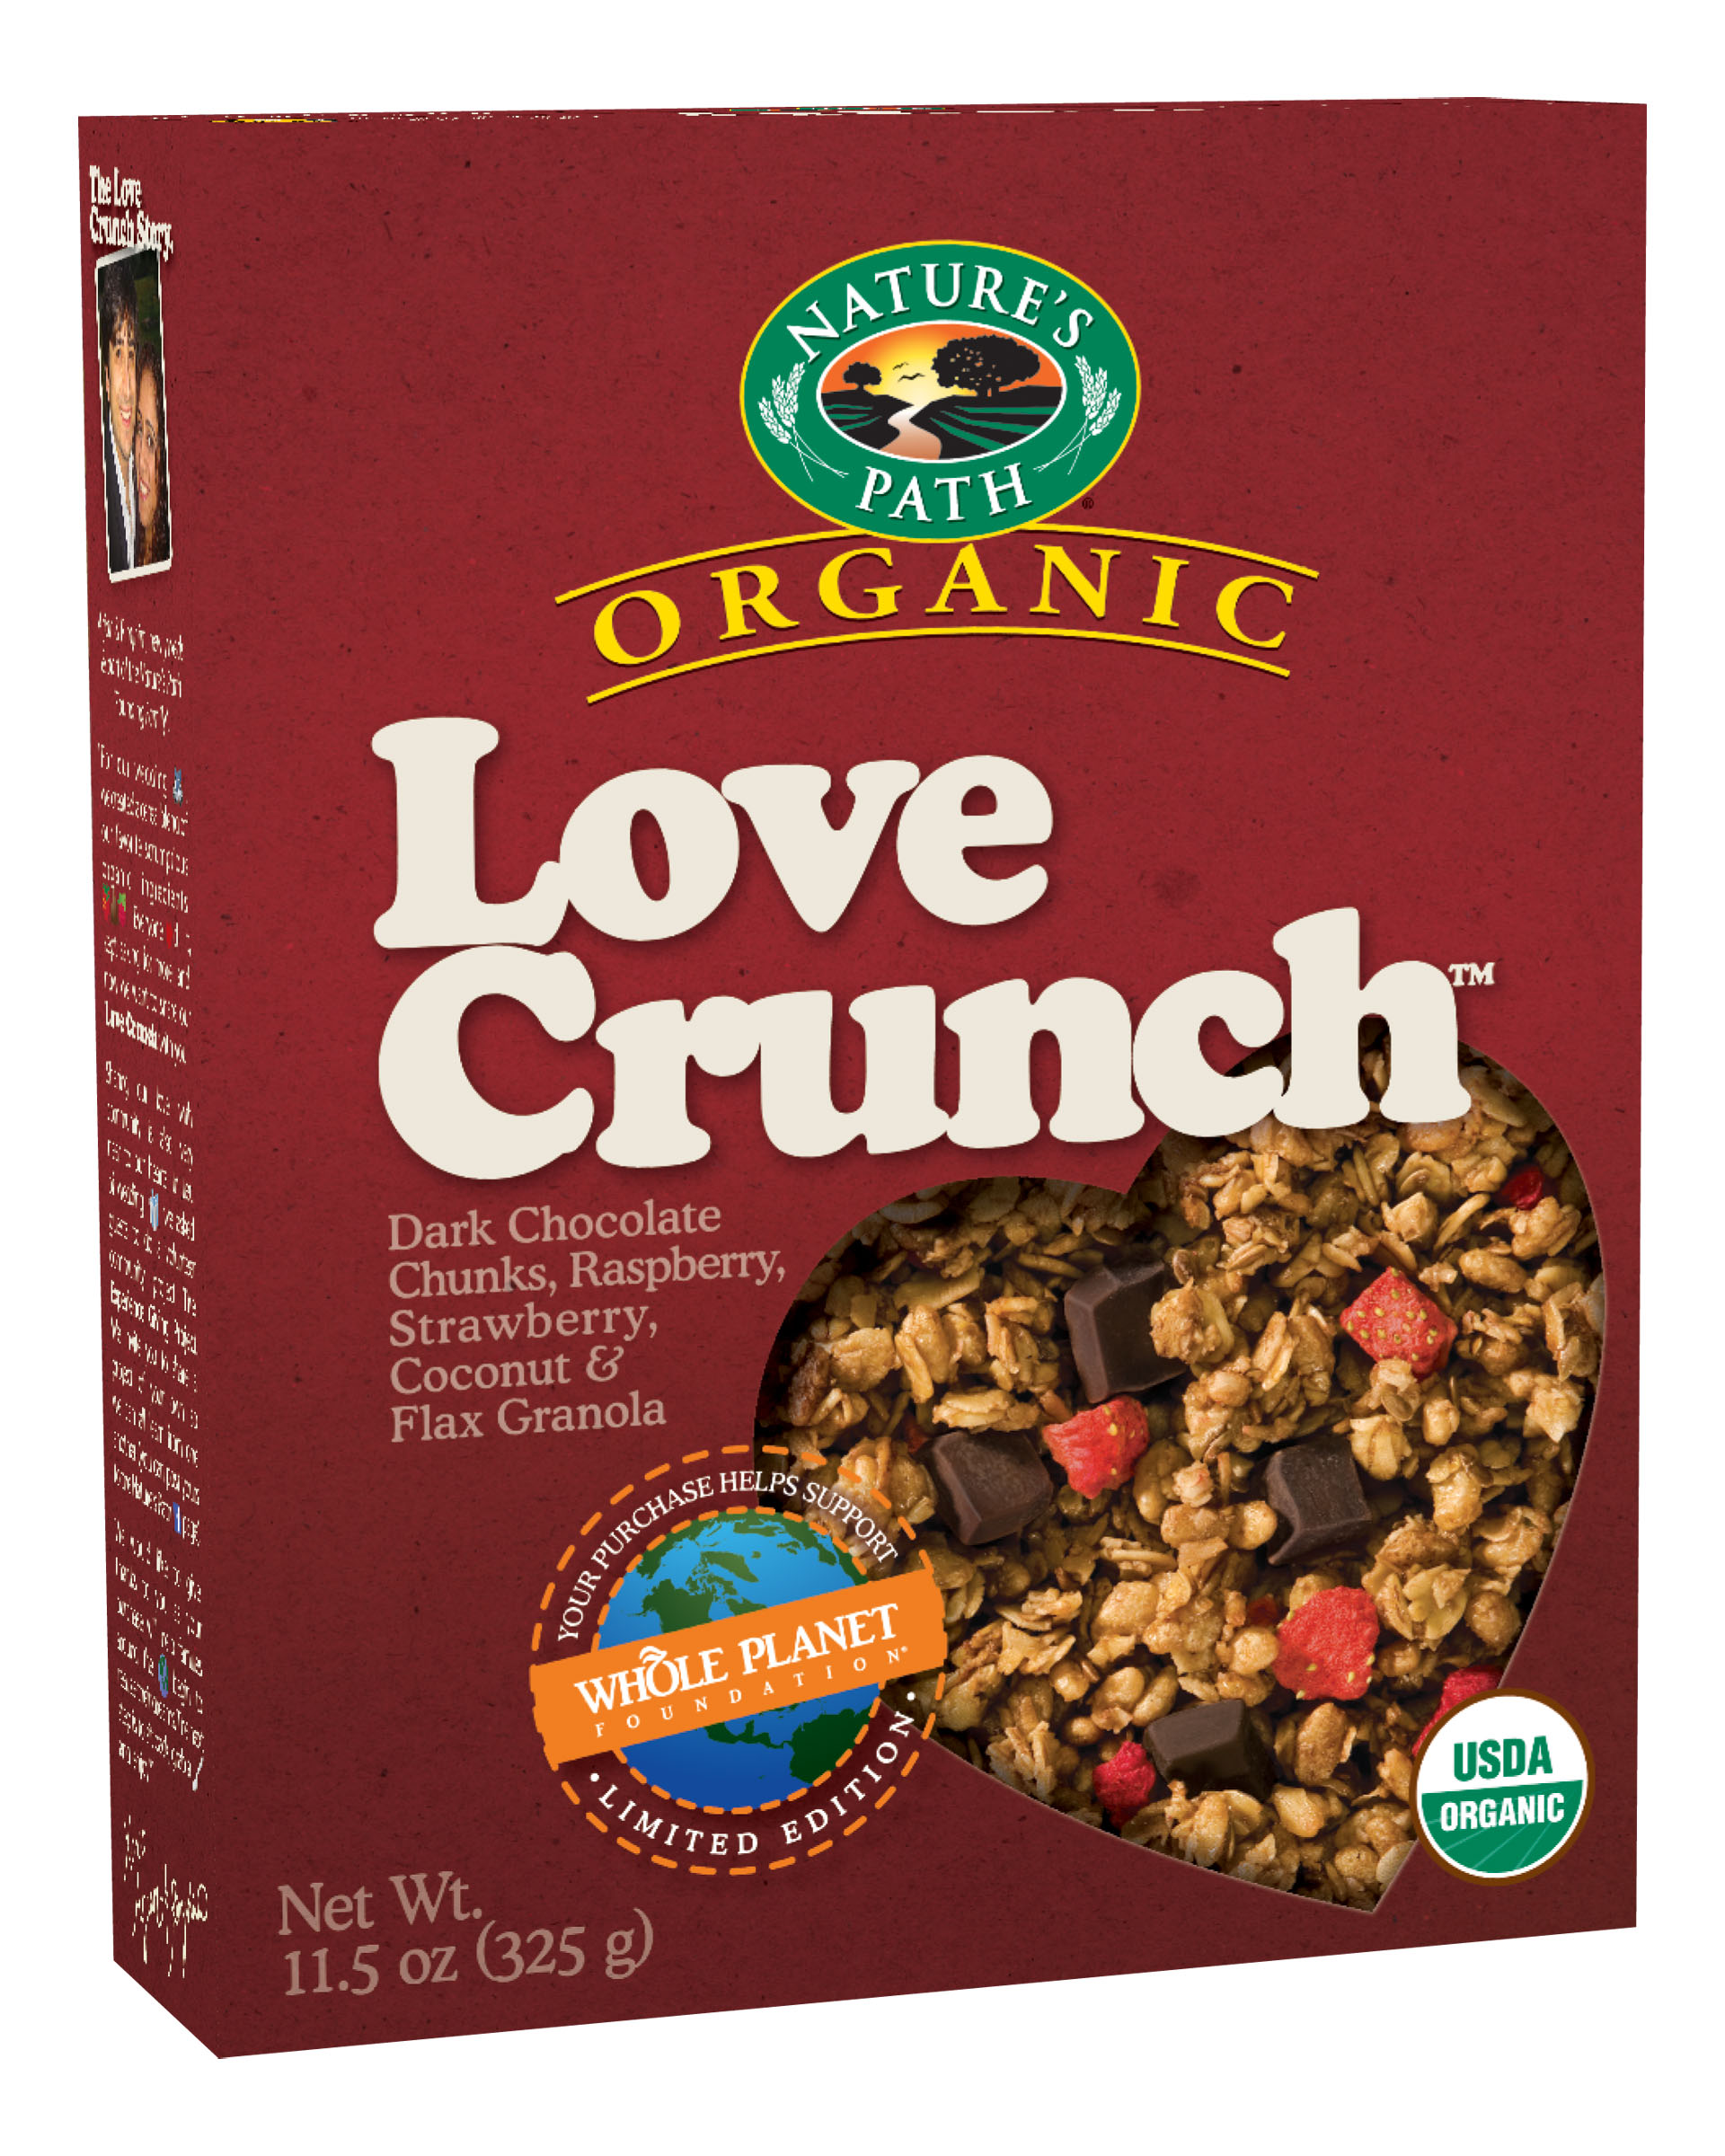 Nature's Path Love Crunch Review & Giveaway CLOSED